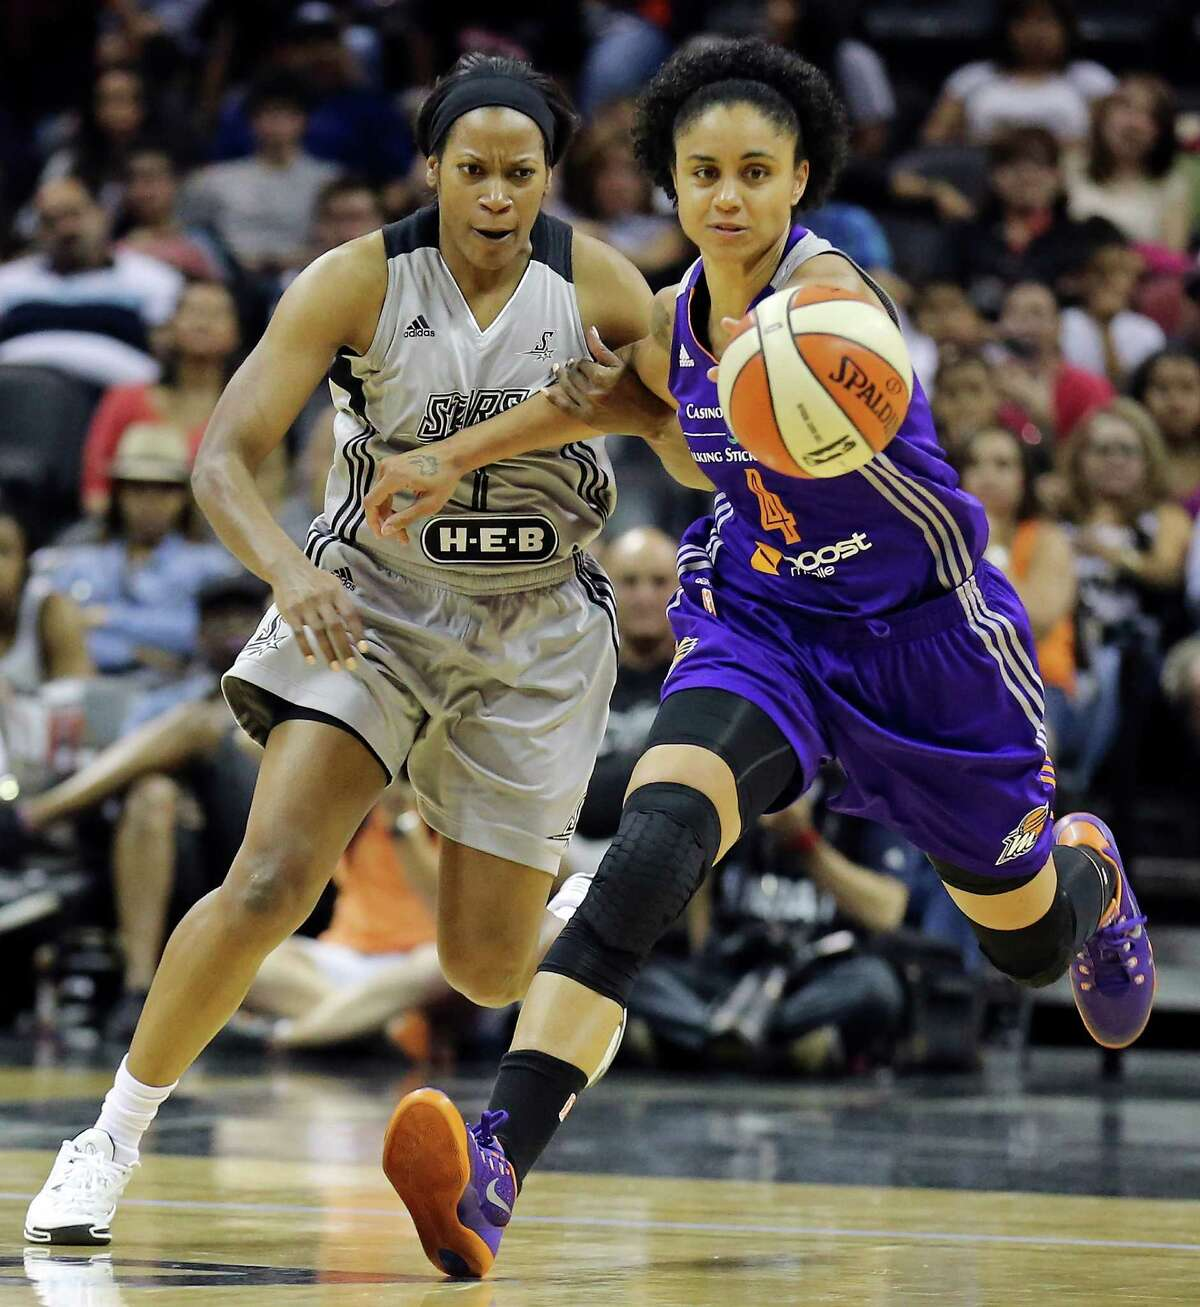 San Antonio Stars' Jia Perkins and Phoenix Mercury's Candice Dupree chase after a loose ball during their WNBA game Saturday June 7, 2014 at the AT&T Center. The Mercury won in double overtime 91-79.